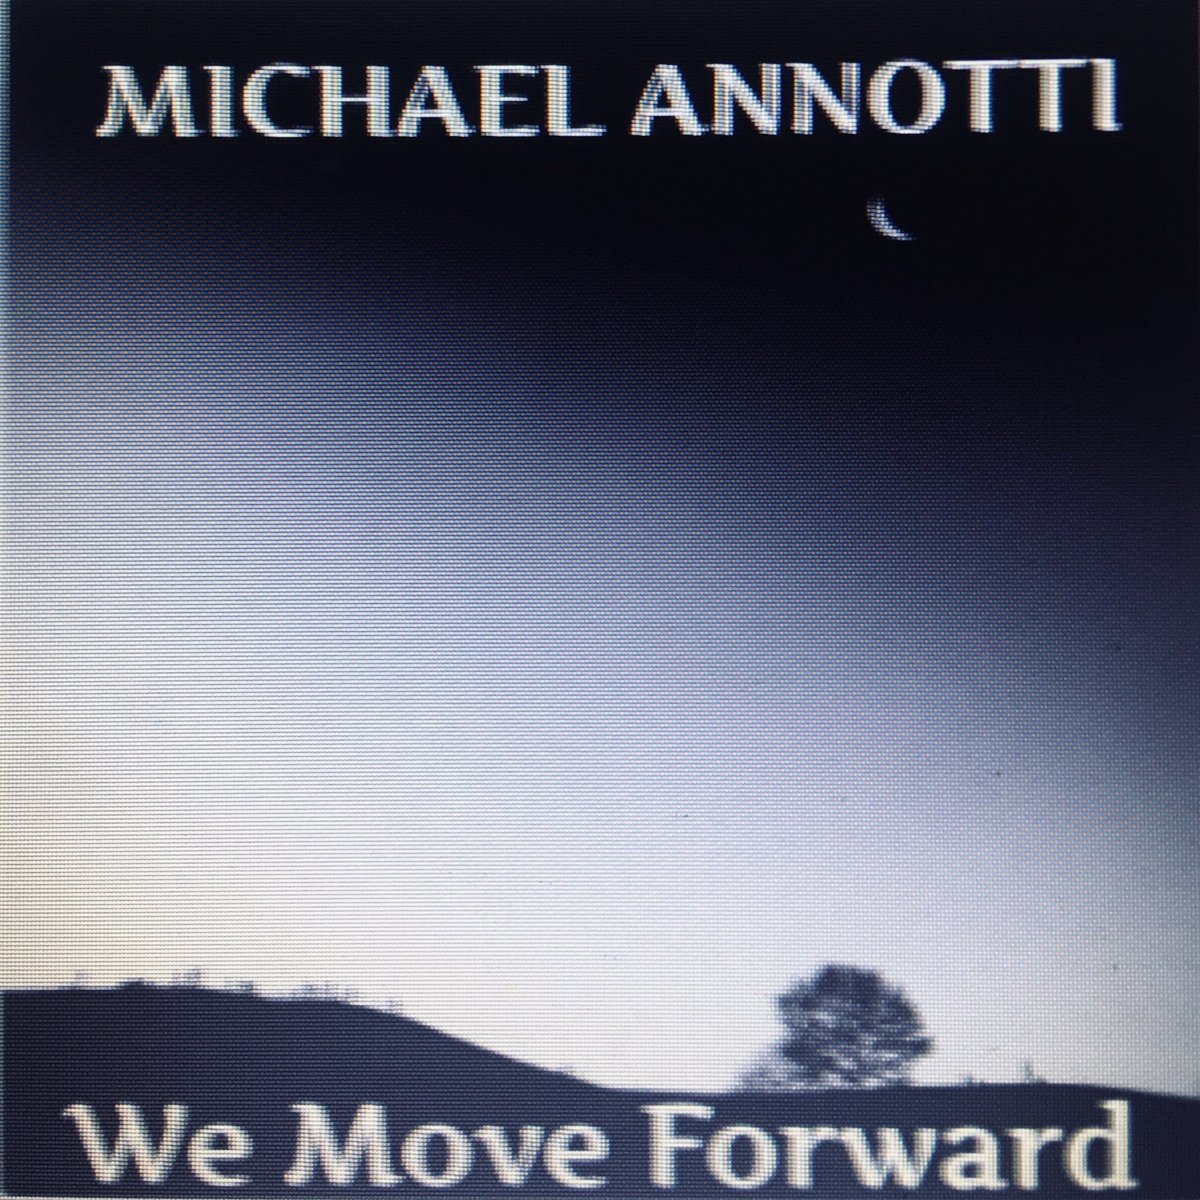 #WeMoveForward soon streaming @Spotify #AnnottiMusic #CambridgeSoundStudios sign up on the mailing list http://michaelannotti.compic.twitter.com/p80dNZ24Z1